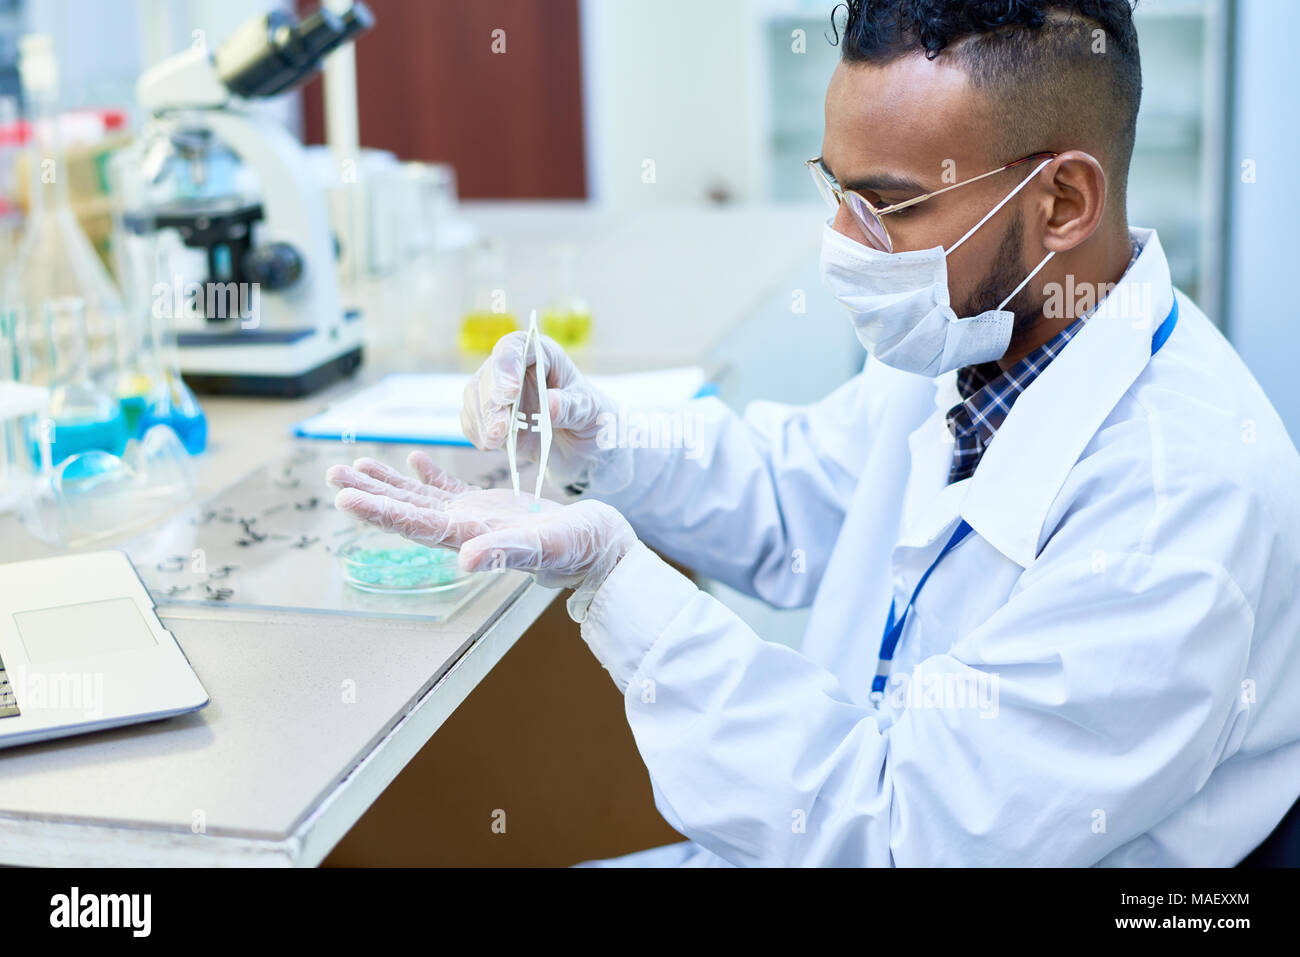 Concentrated handsome chemist analyzing medical sample - Stock Image